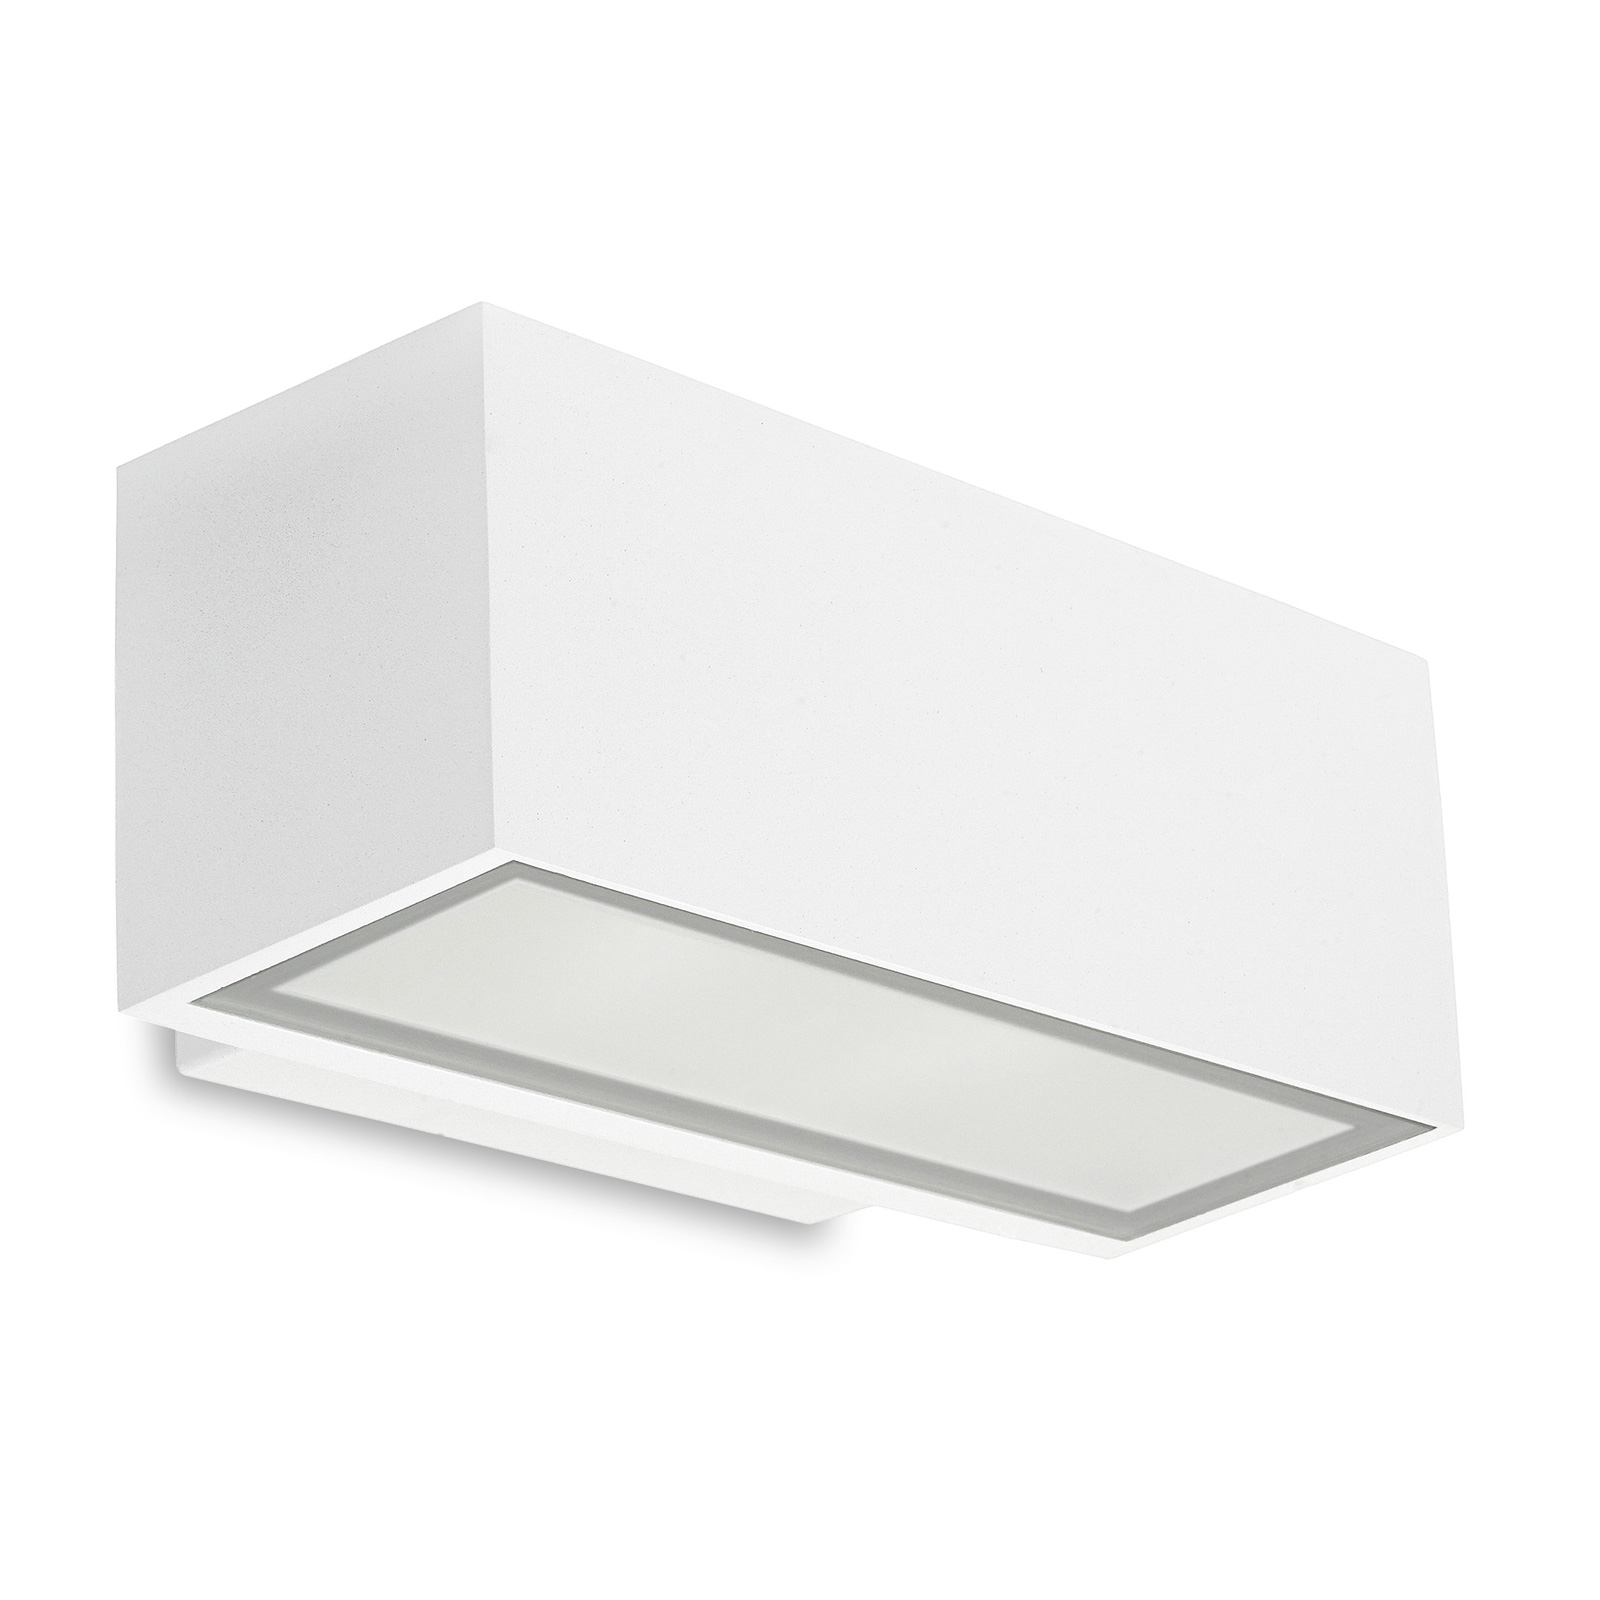 LEDS-C4 Afrodita applique d'ext., down, blanche